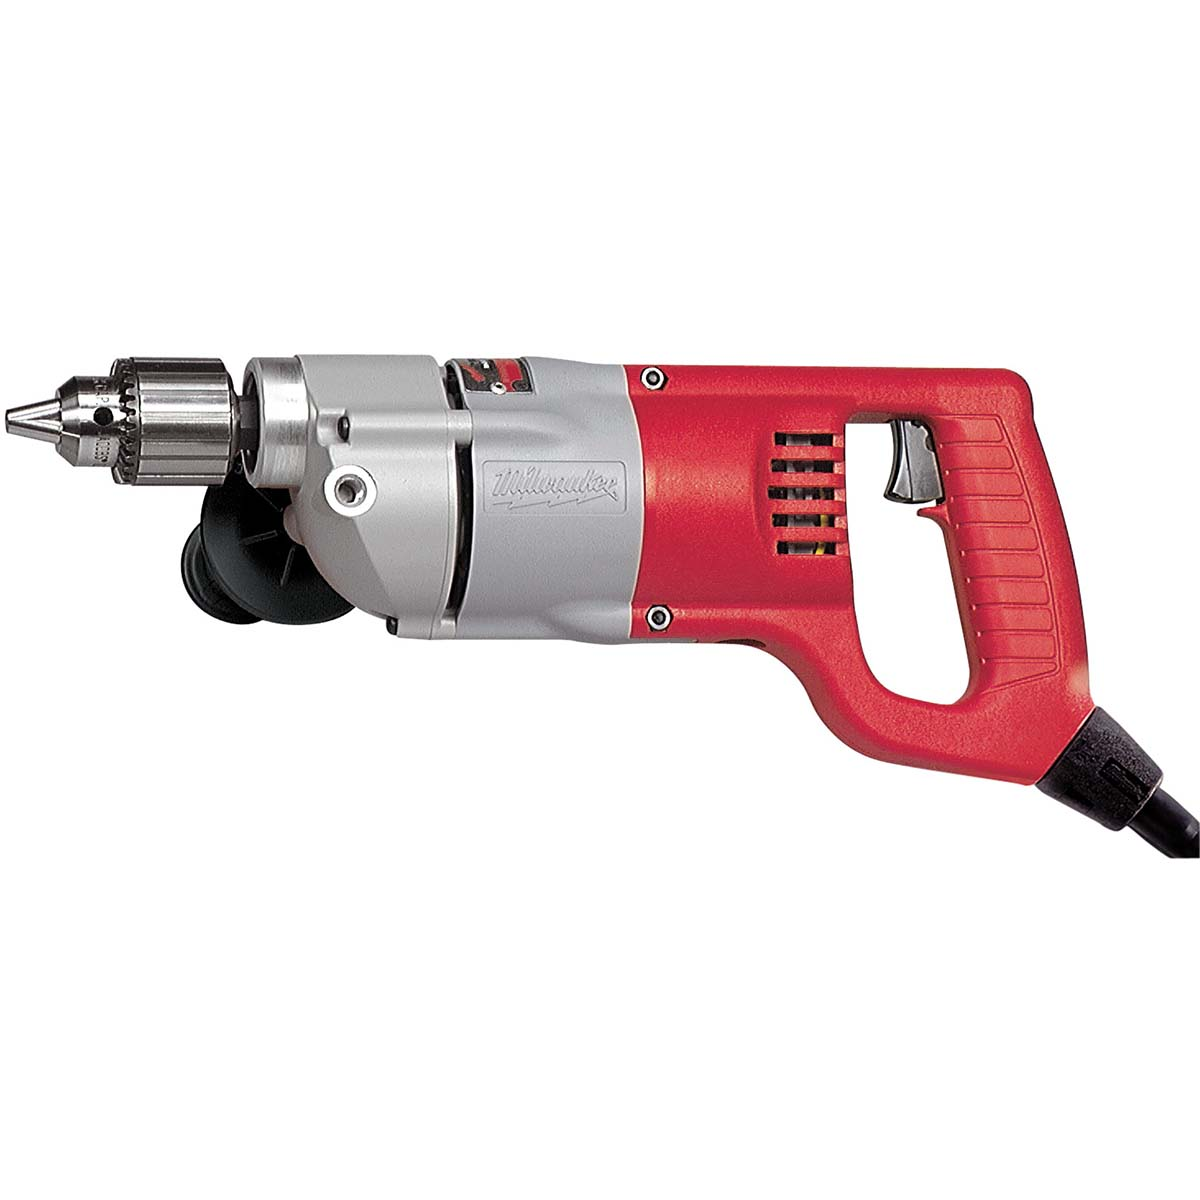 1/2 D-Handle Drill 0-500 RPM